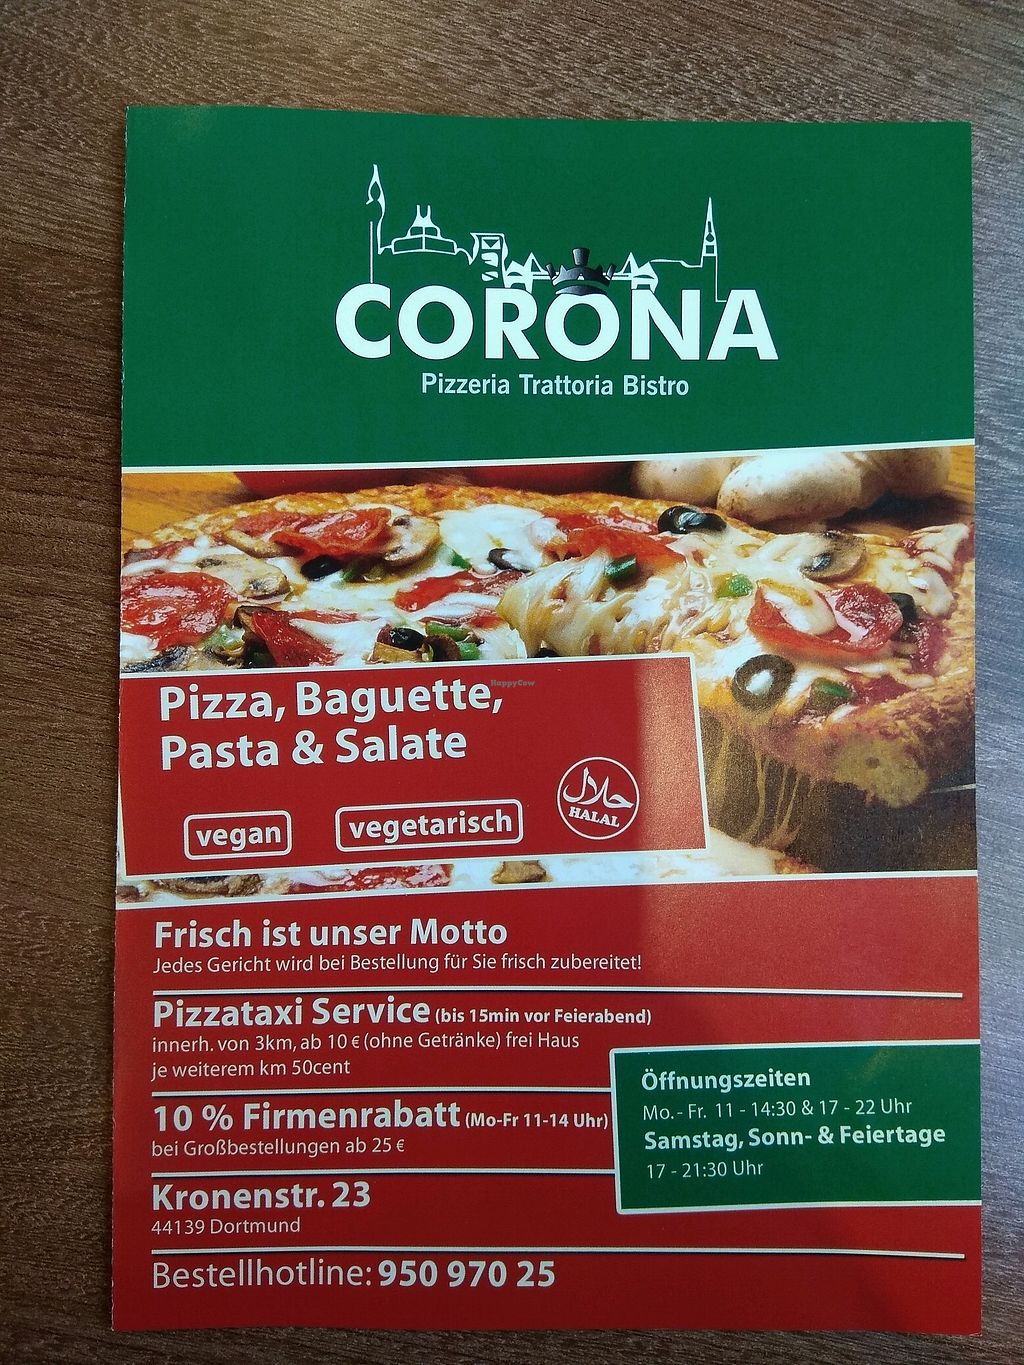 """Photo of Corona Pizzeria and Trattoria  by <a href=""""/members/profile/bikegirl"""">bikegirl</a> <br/>Flyer 01 <br/> March 31, 2018  - <a href='/contact/abuse/image/43698/378923'>Report</a>"""